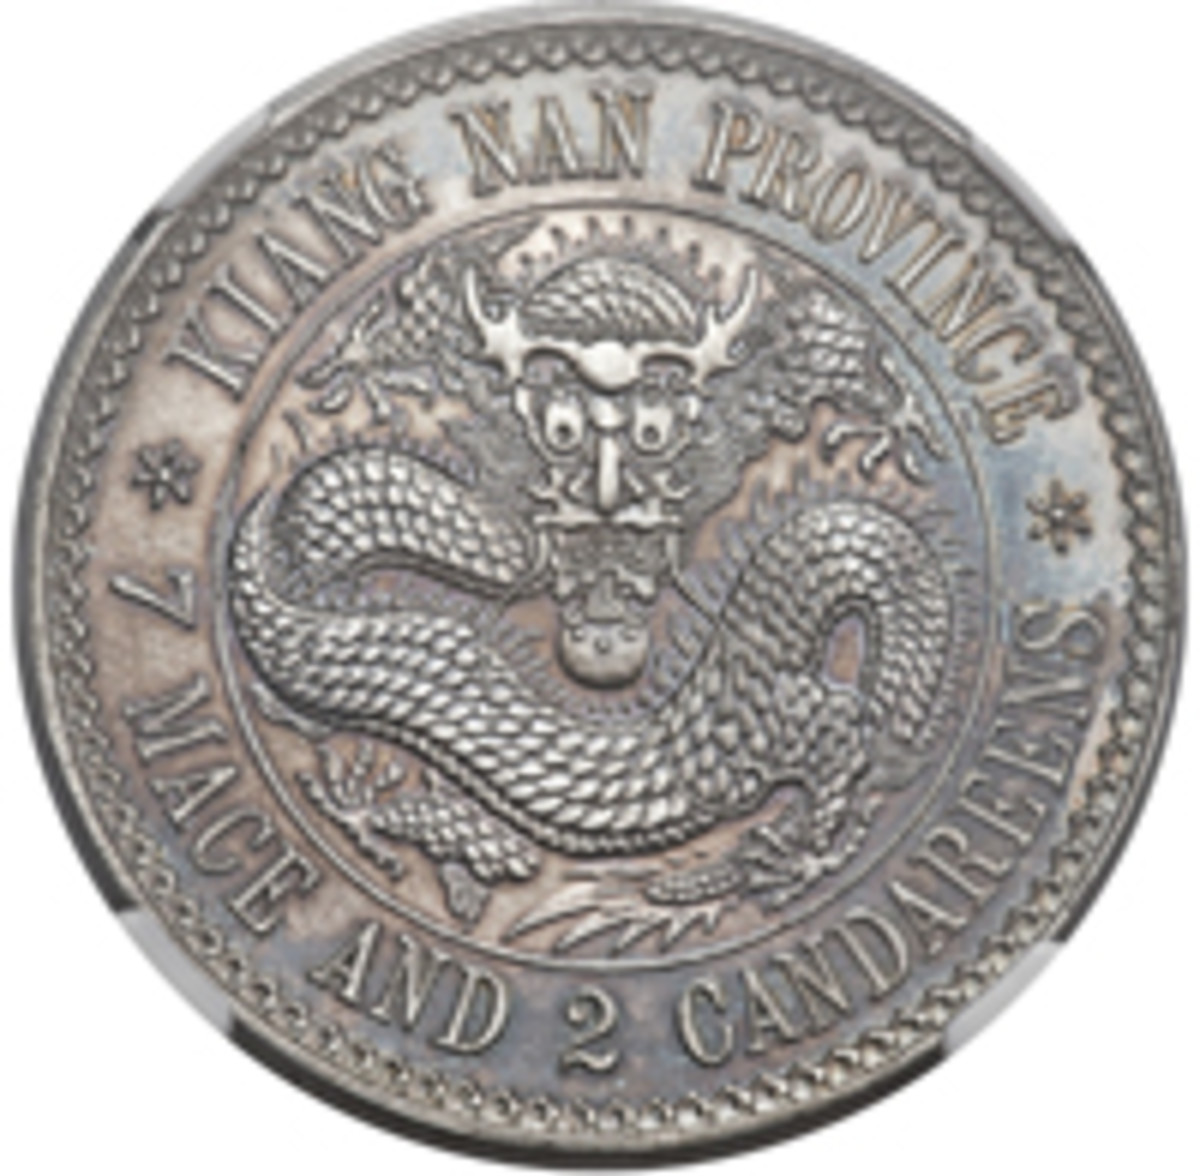 Undated proof pattern Kiang Nan, Kuang-hsu, plain edge dollar c. 1897 struck at the Heaton Mint, which sold for $240,000 graded PF65 NGC. (Image www.ha.com)